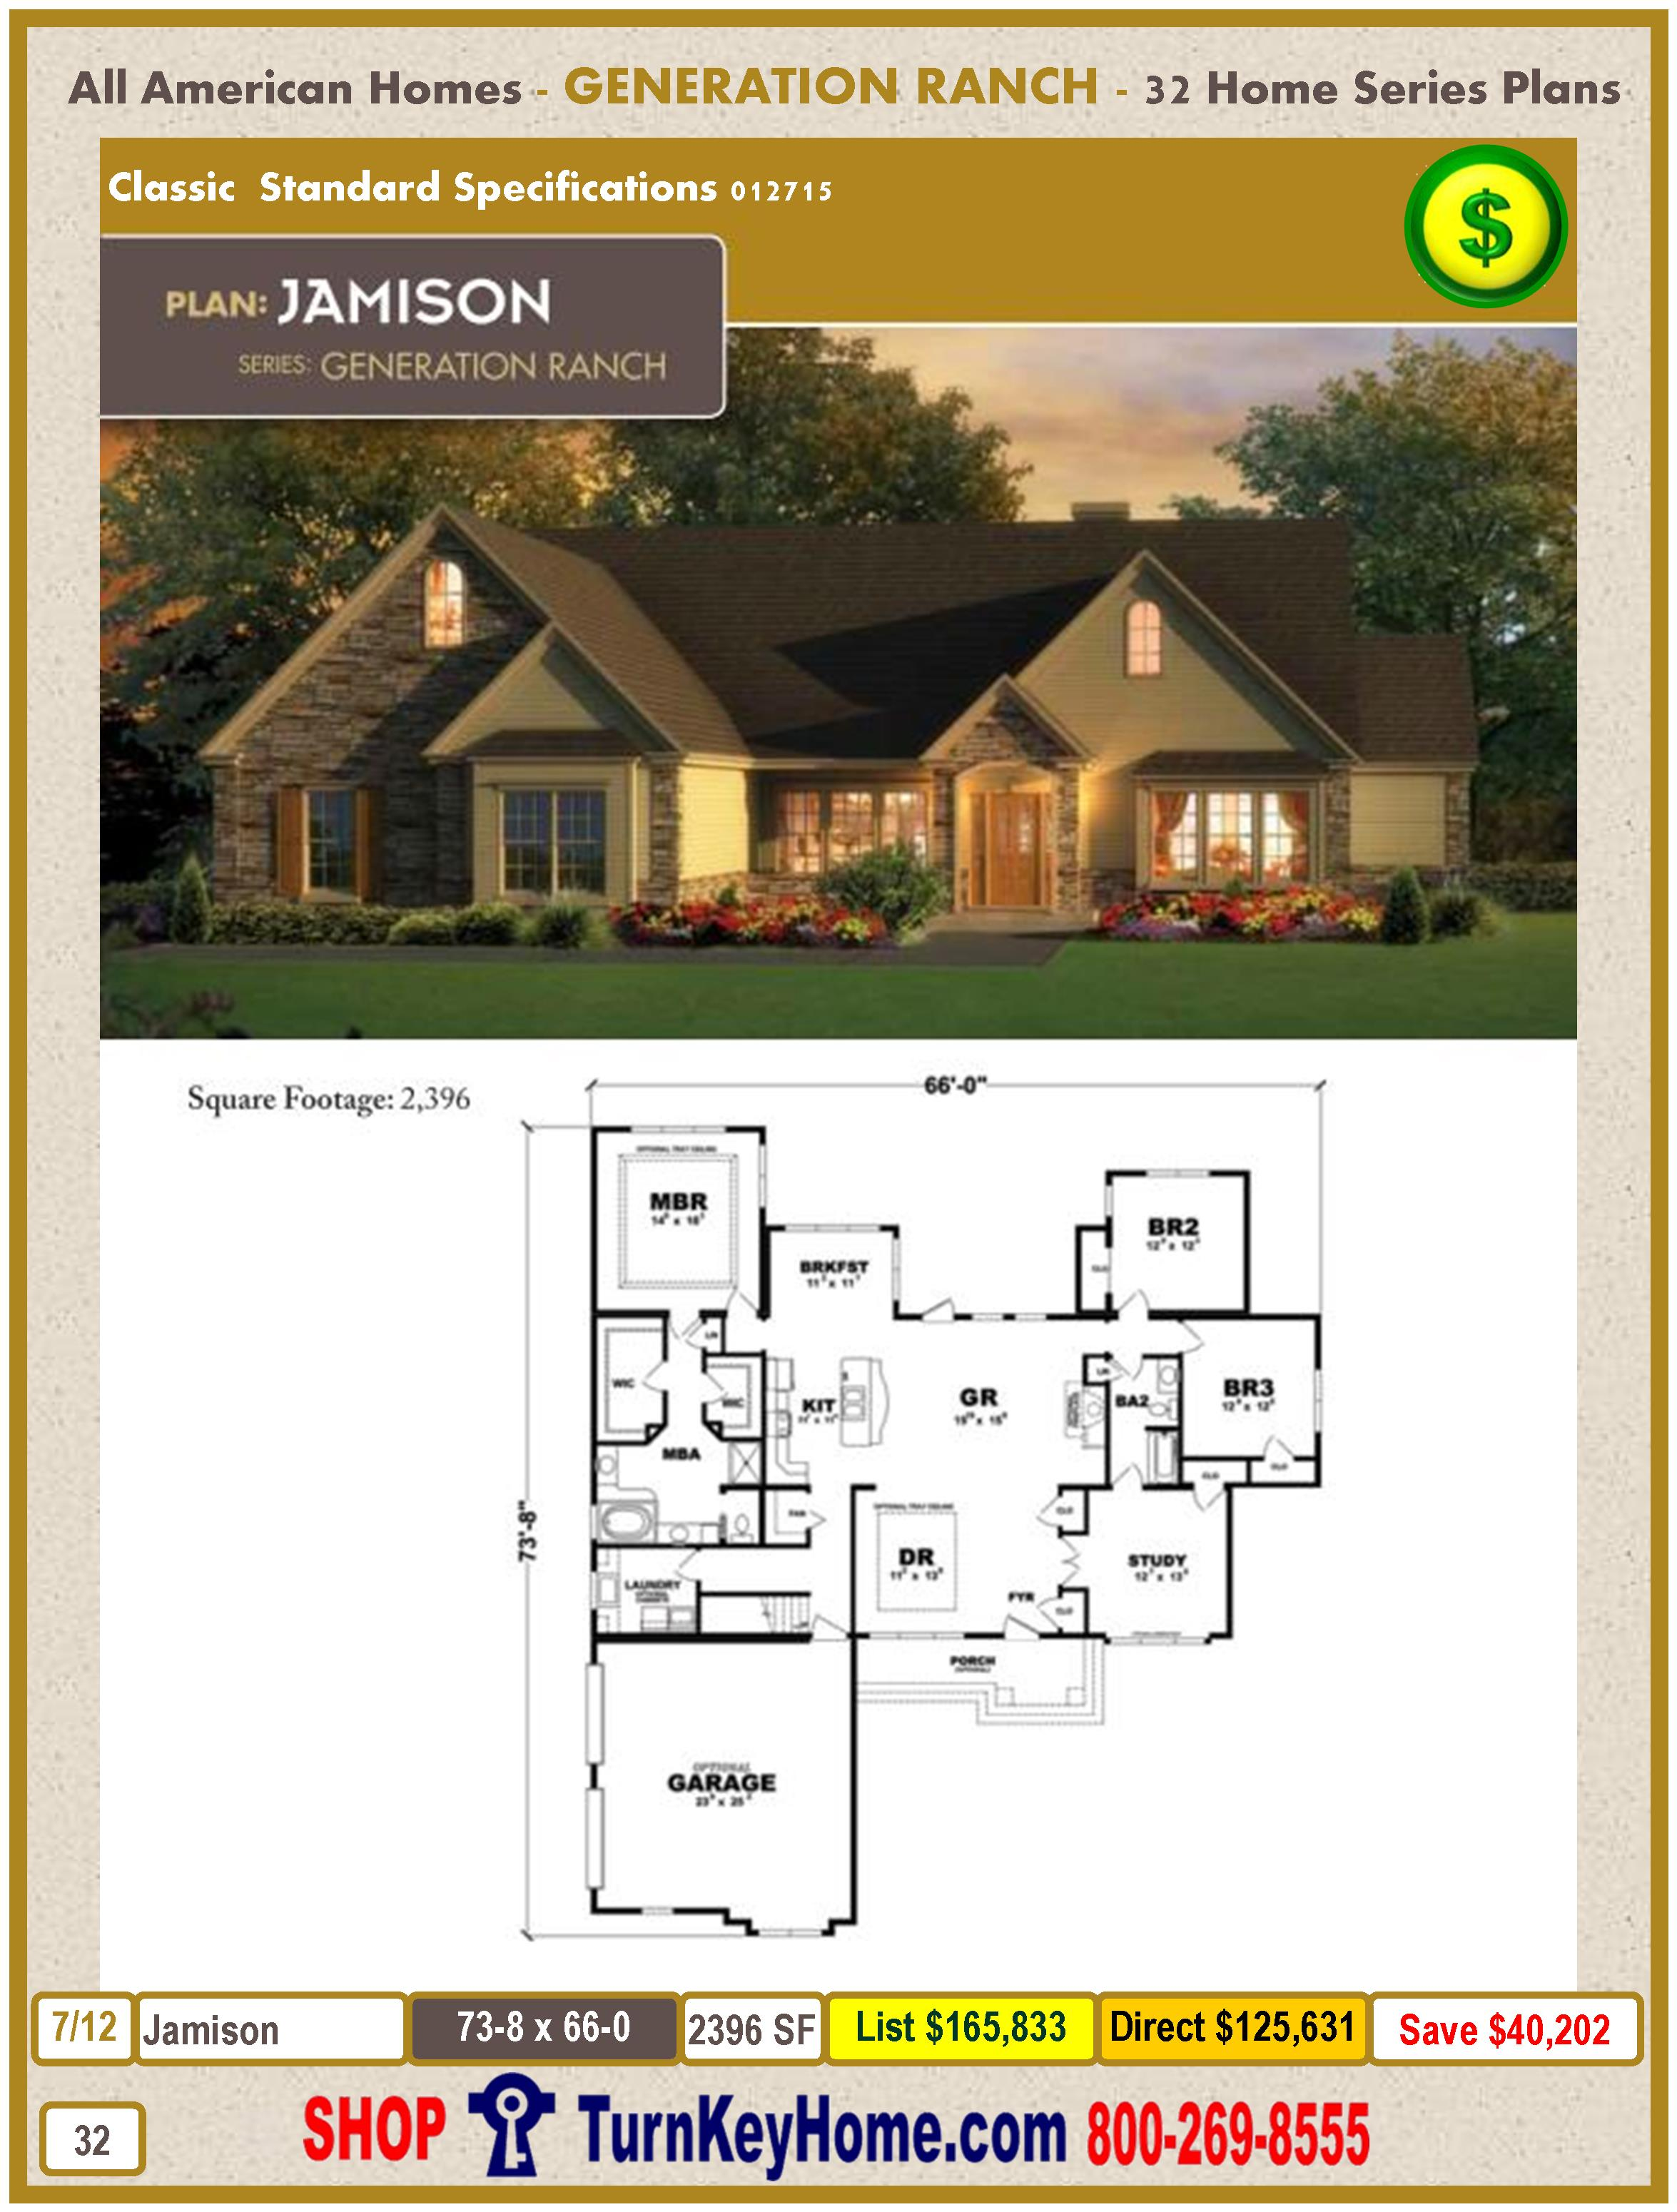 Modular.All.American.Homes.Generation.Ranch.Home.Series.Catalog.Page.32.Jamison.Direct.Price.021415